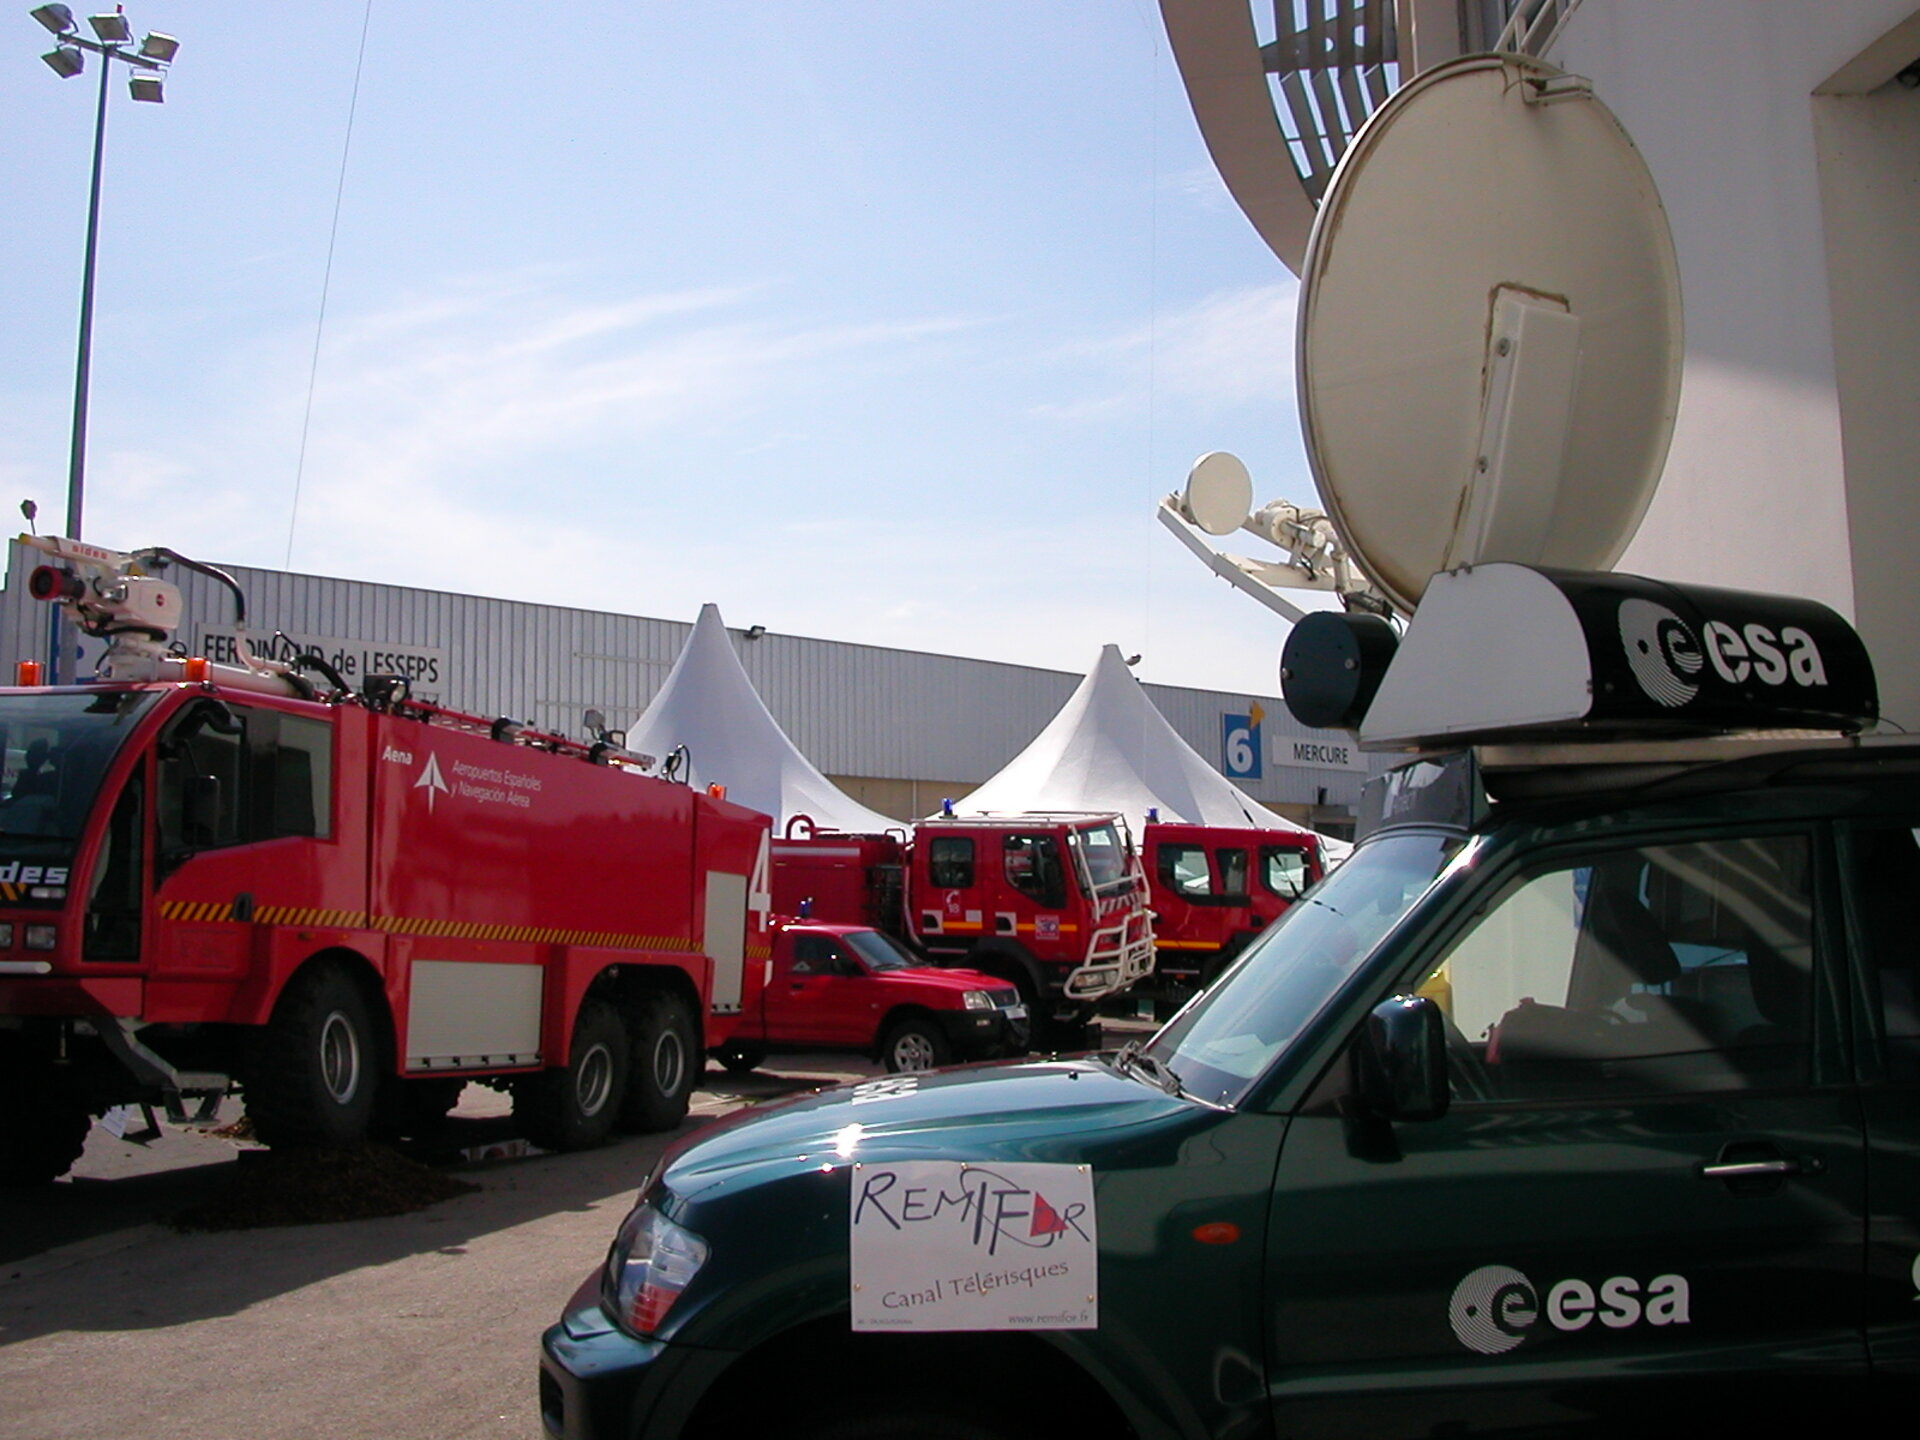 ITA-245 Mitsubishi Pajero mobile Ku-band digital multimedia uplink station